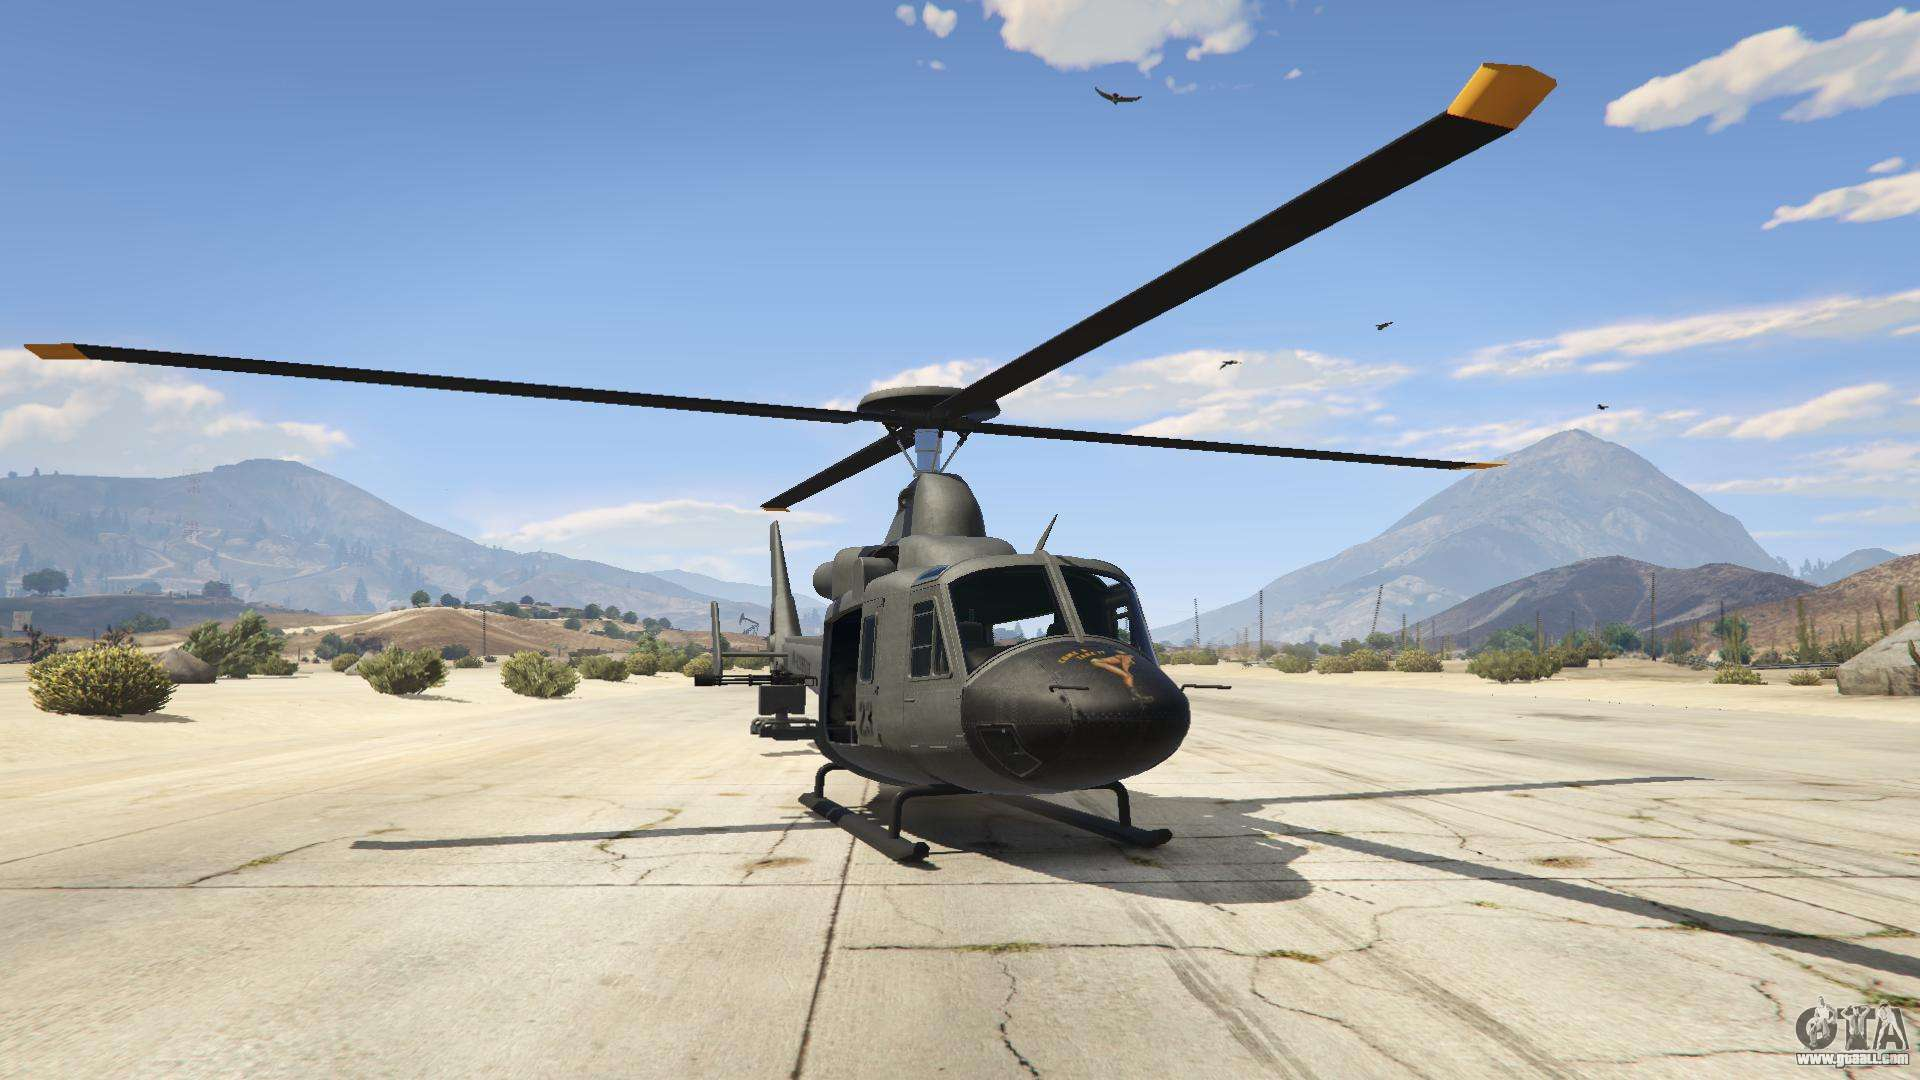 Elicottero Gta 5 : Gallery for gt gta military helicopter